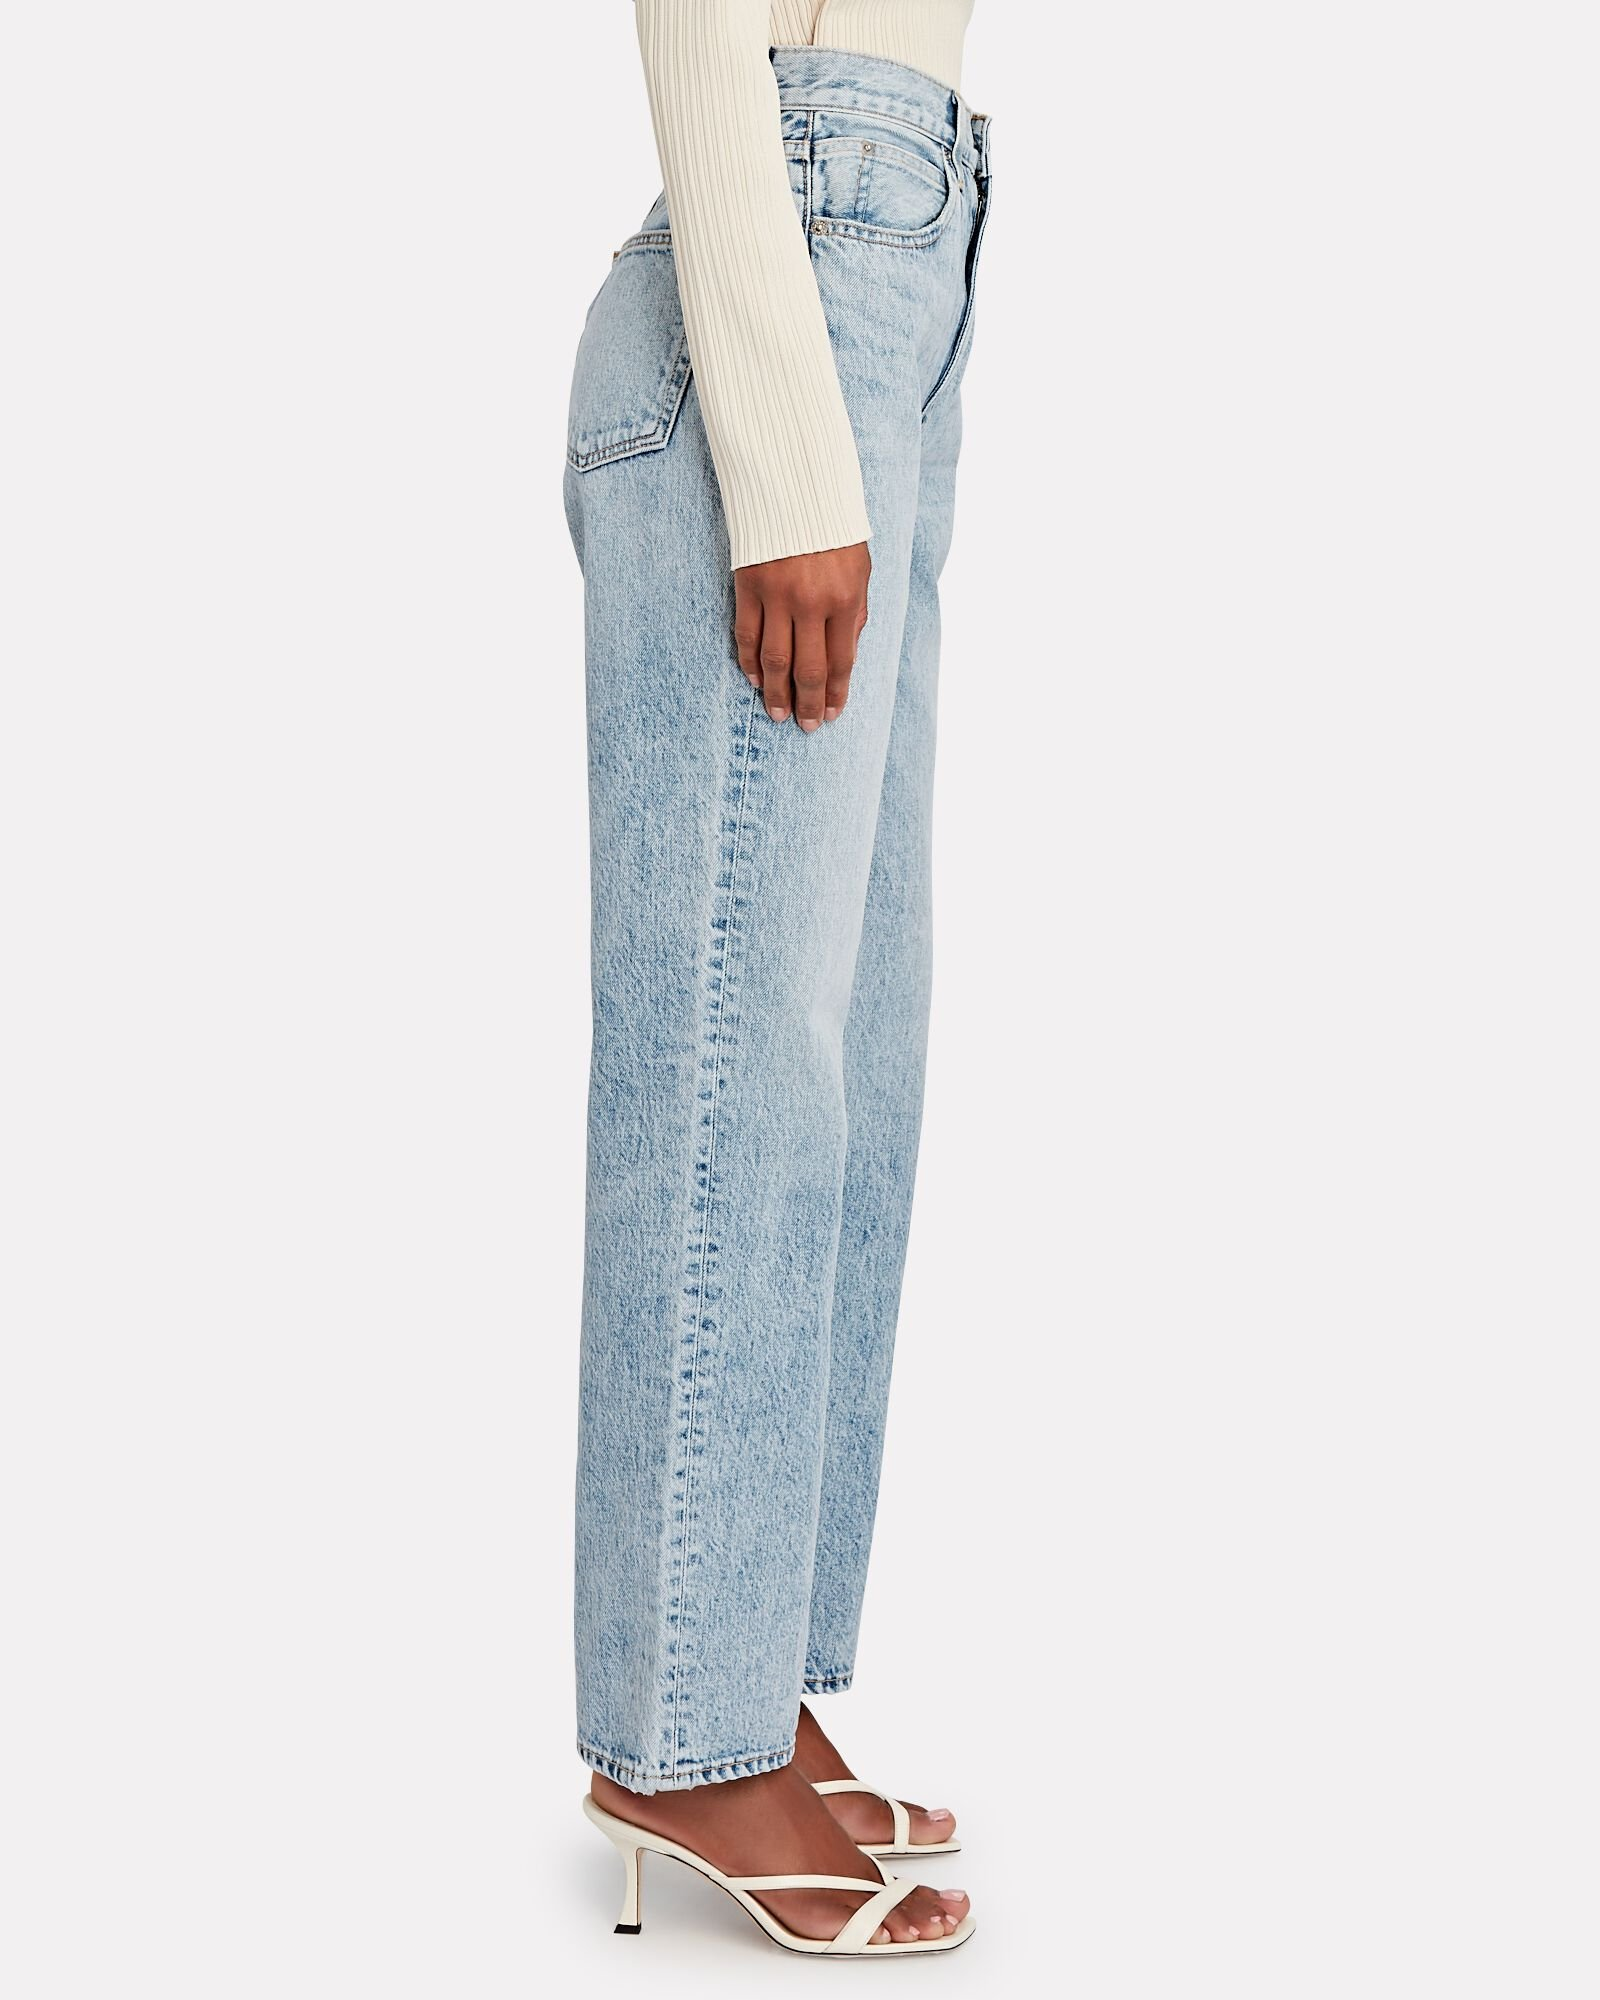 London High-Rise Straight-Leg Jeans, CROSBY, hi-res